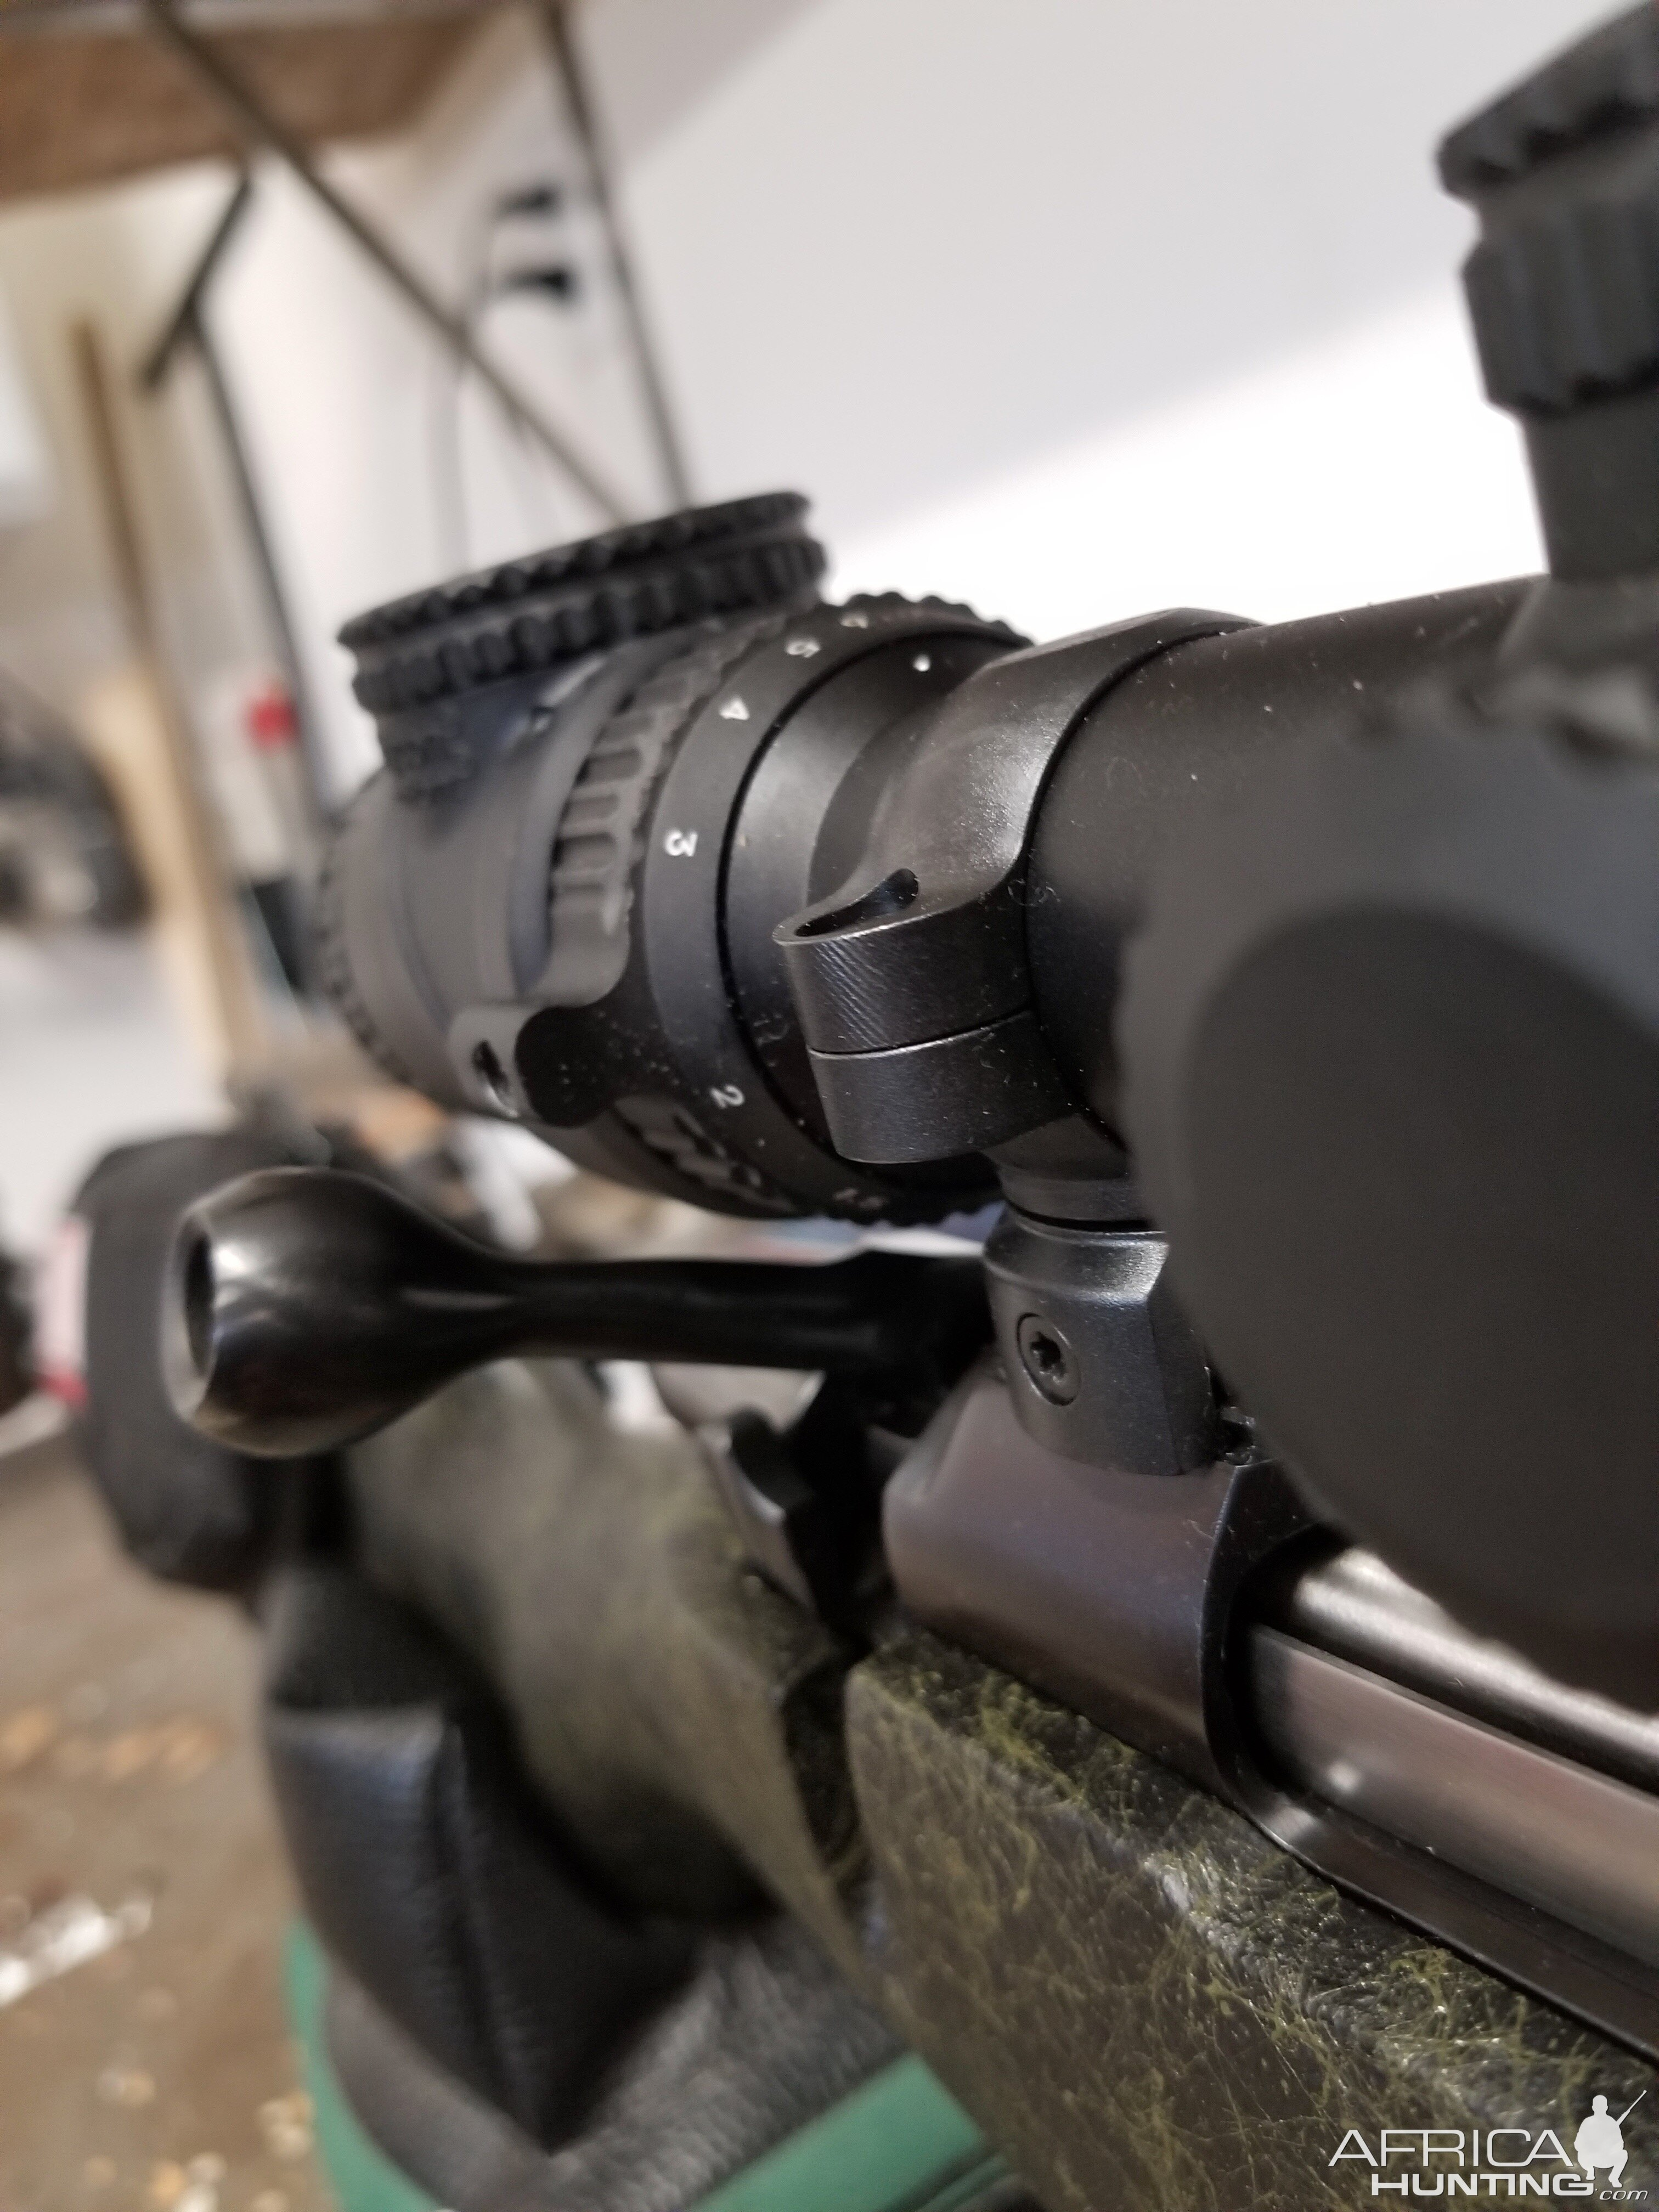 CZ 550 .416 Rigby Rifle mounted with Trijicon AccuPoint 1-6 30mm